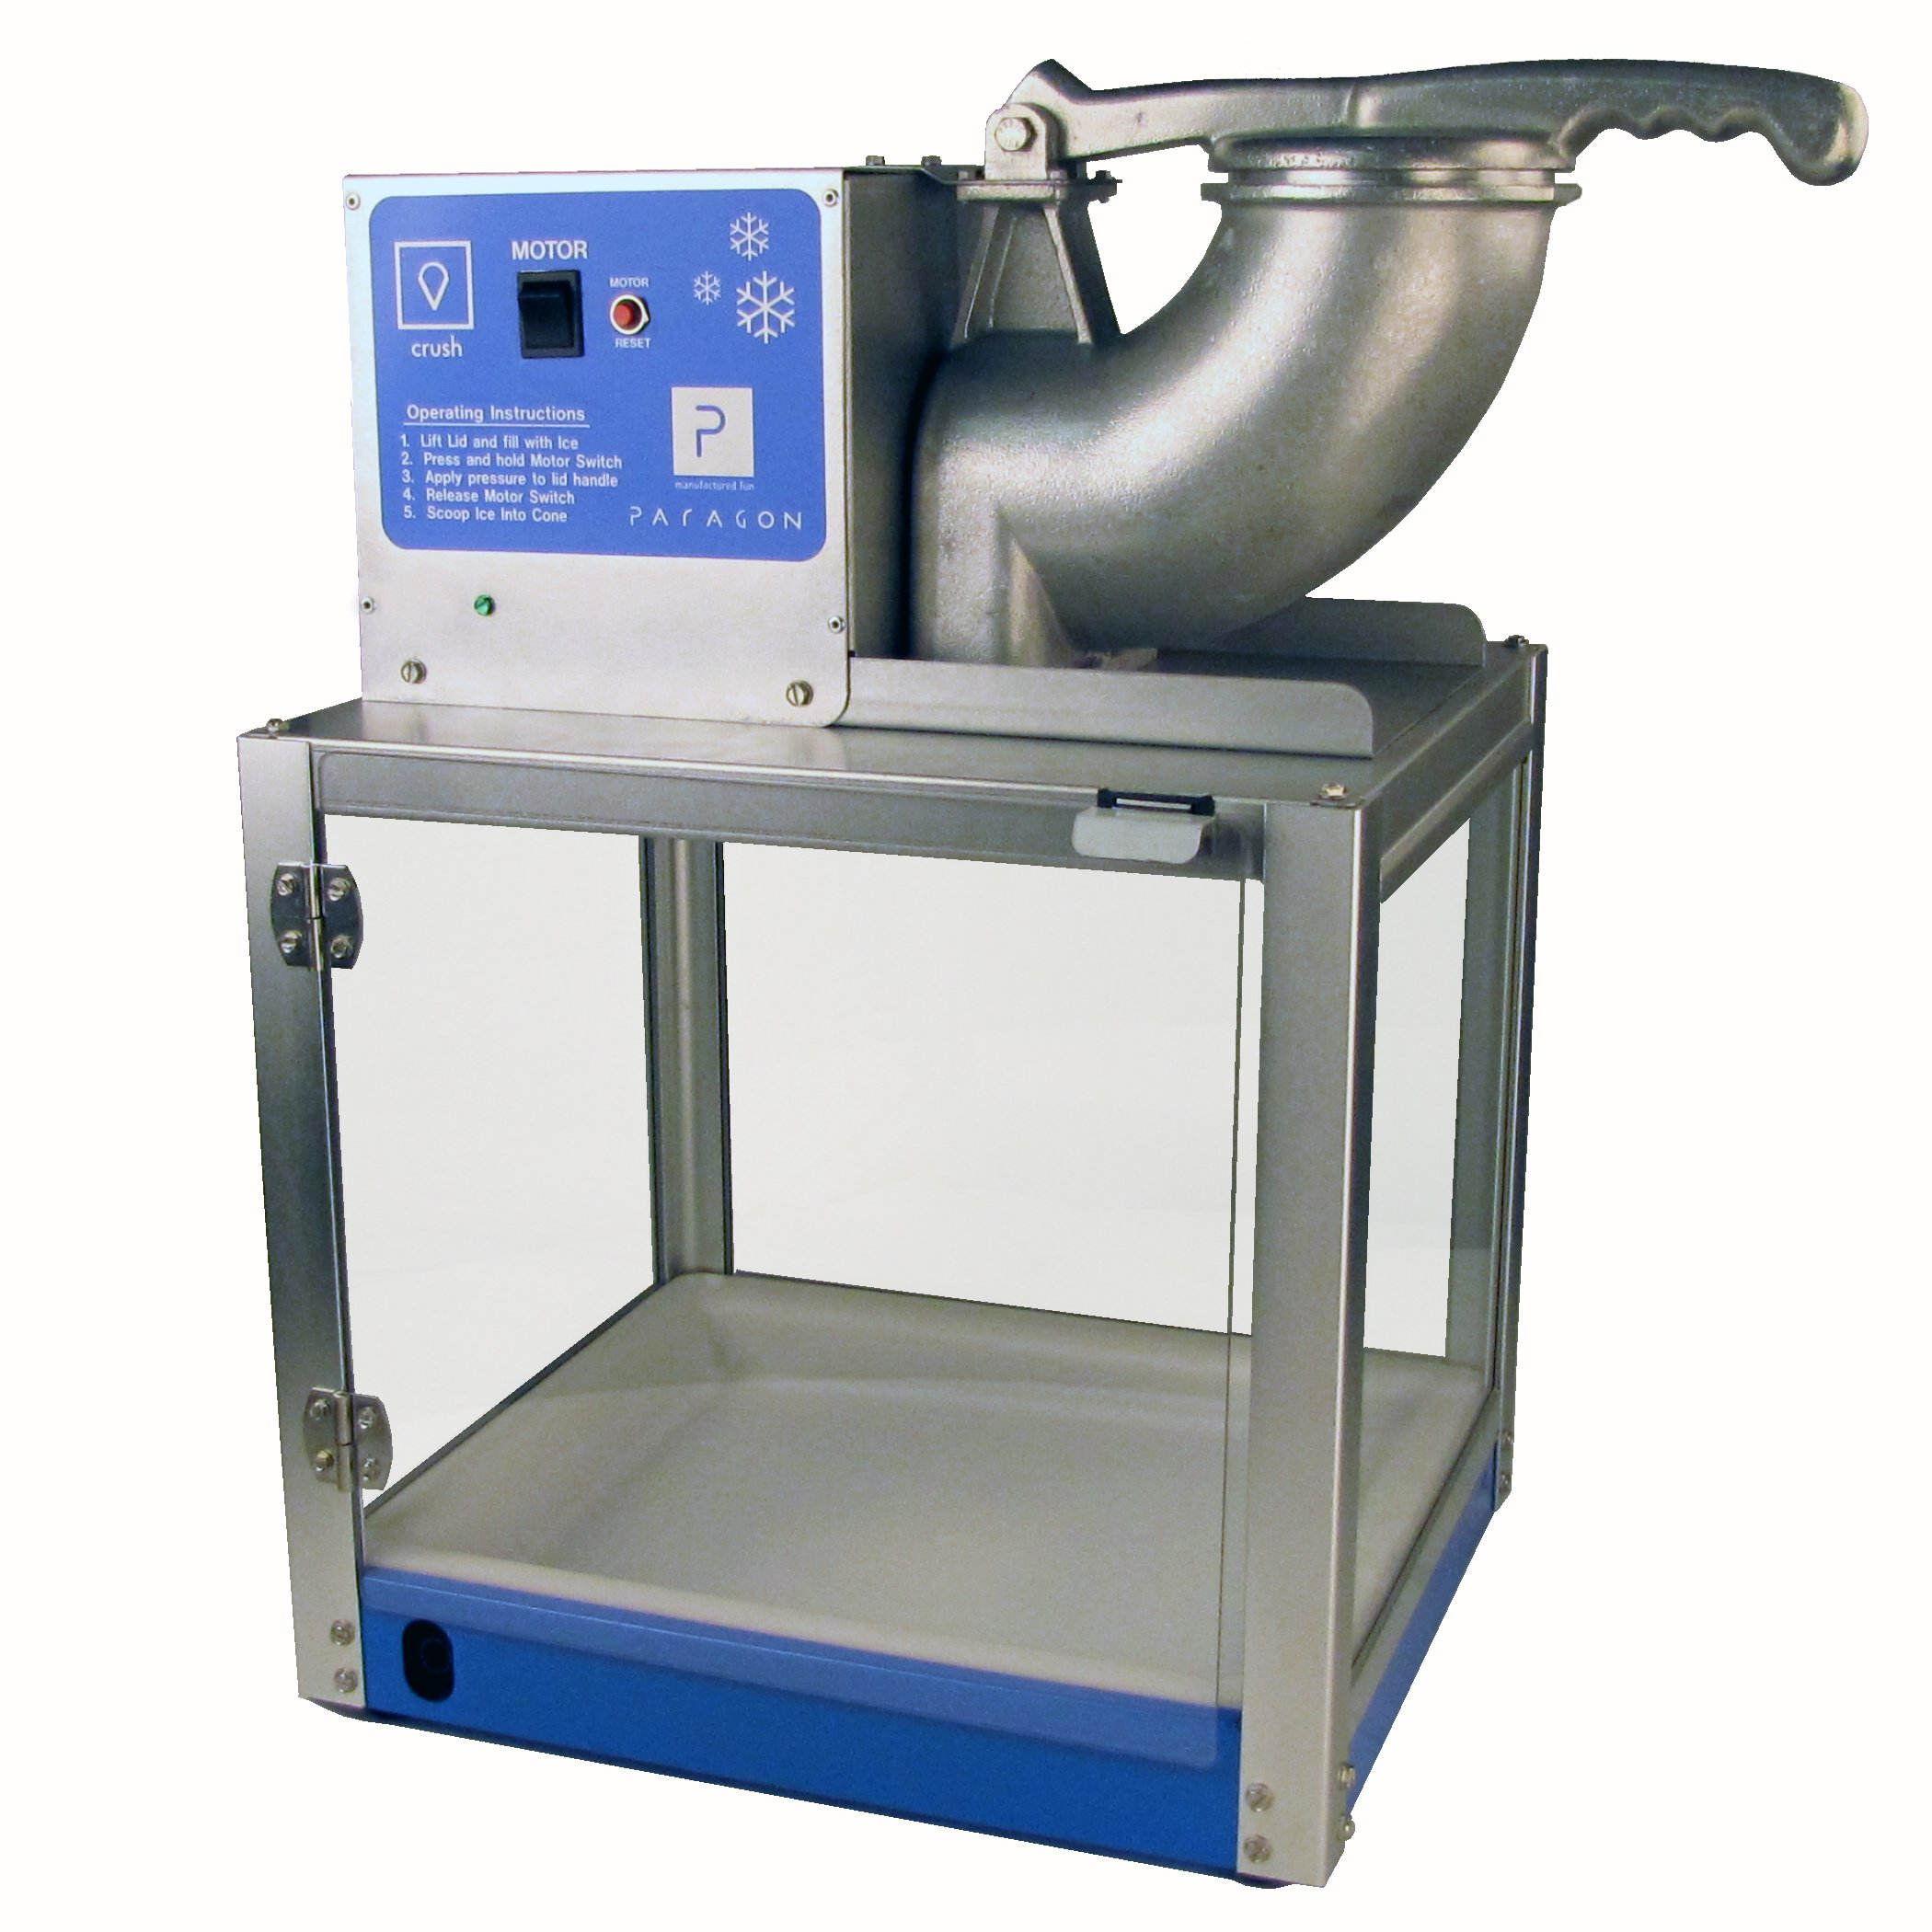 Paragon Simply-A-Blast SNO Cone Machine for Professional Concessionaires Requiring Commercial Heavy Duty Snow Cone Equipment 1/3 Horse Power 792 Watts by Paragon - Manufactured Fun